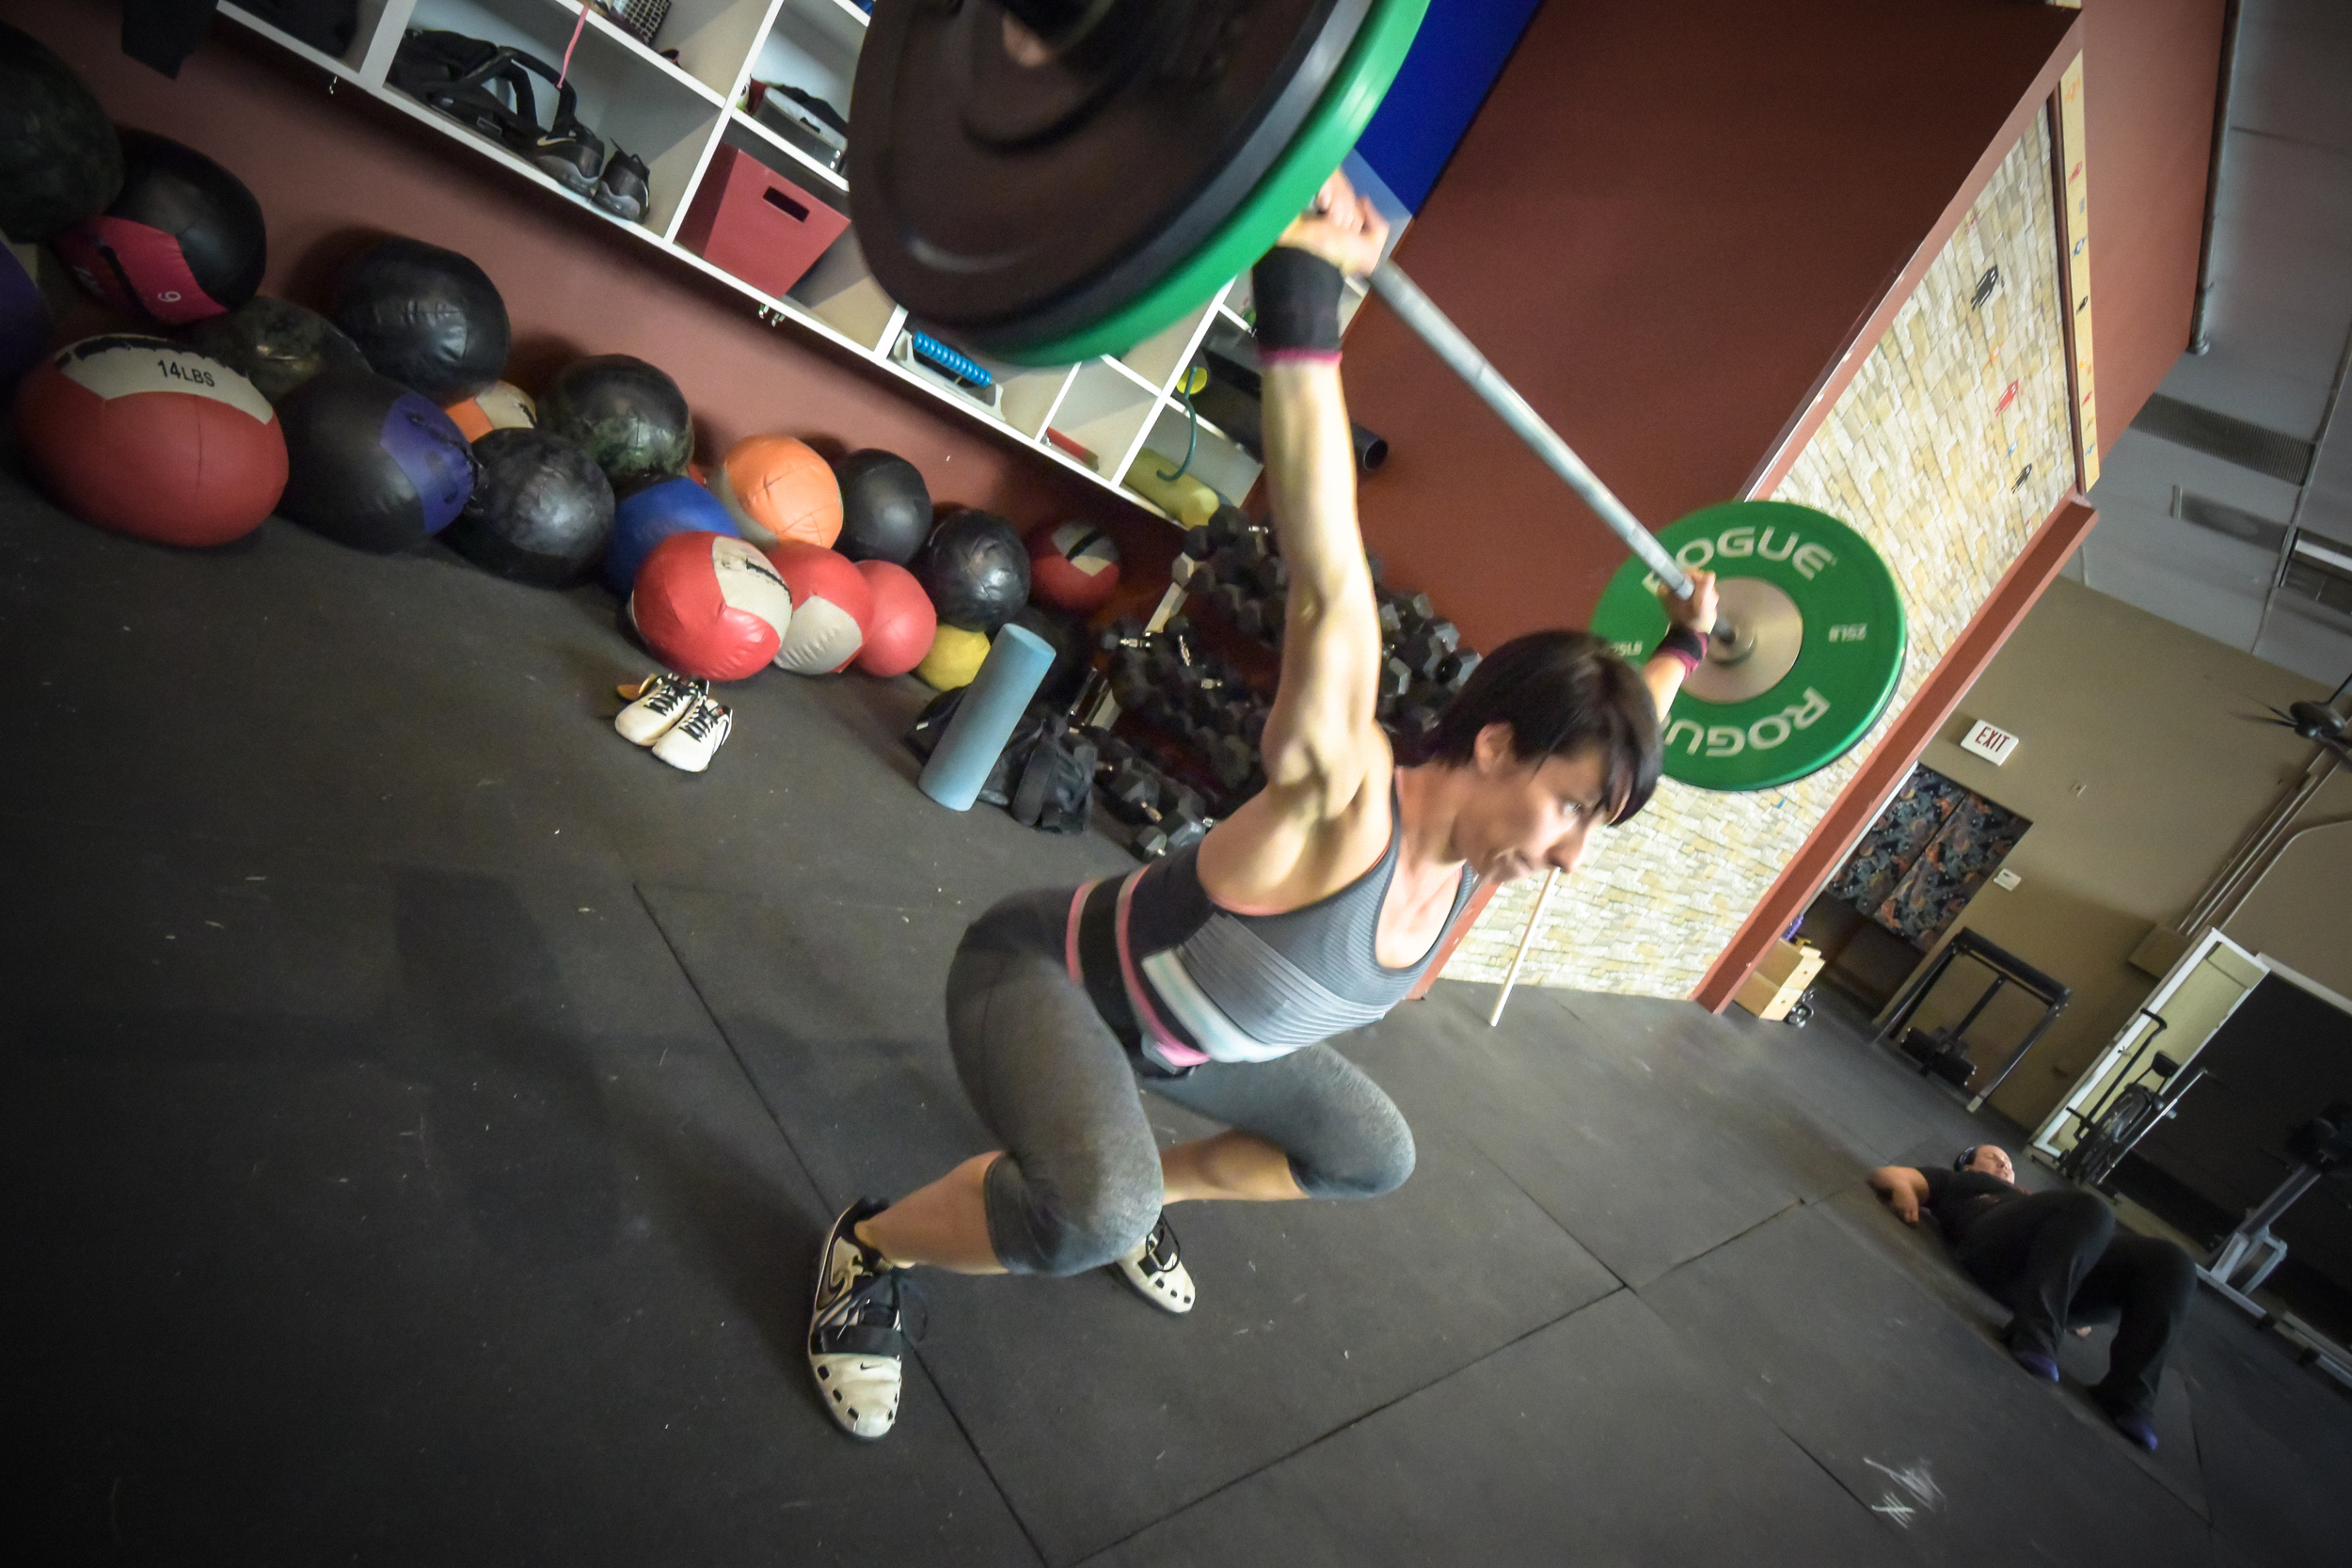 SV Family, Britt, Becky, and I have been training Level 3 programming on and off for few months at 7 AM. Dan & Tim are going to join. Anyone is welcome. It is not a coached class and it is absolutely ok to join us even if you scale! Programming matters but doing WODs with other is even more important! -  Coach Michaela